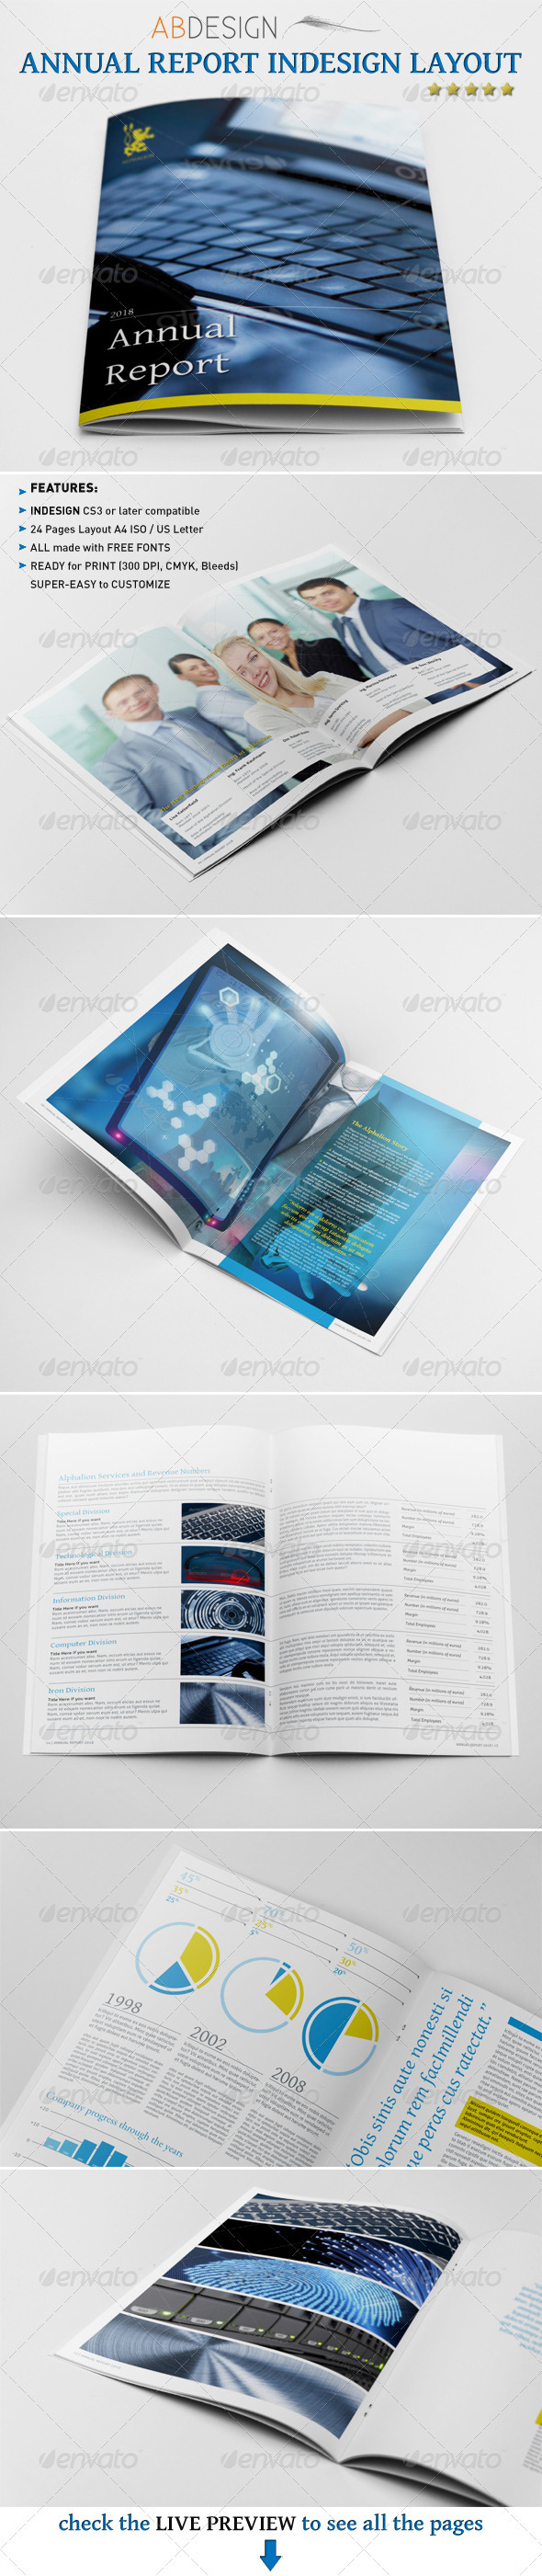 GraphicRiver Annual Report Indesign Layout 2879409